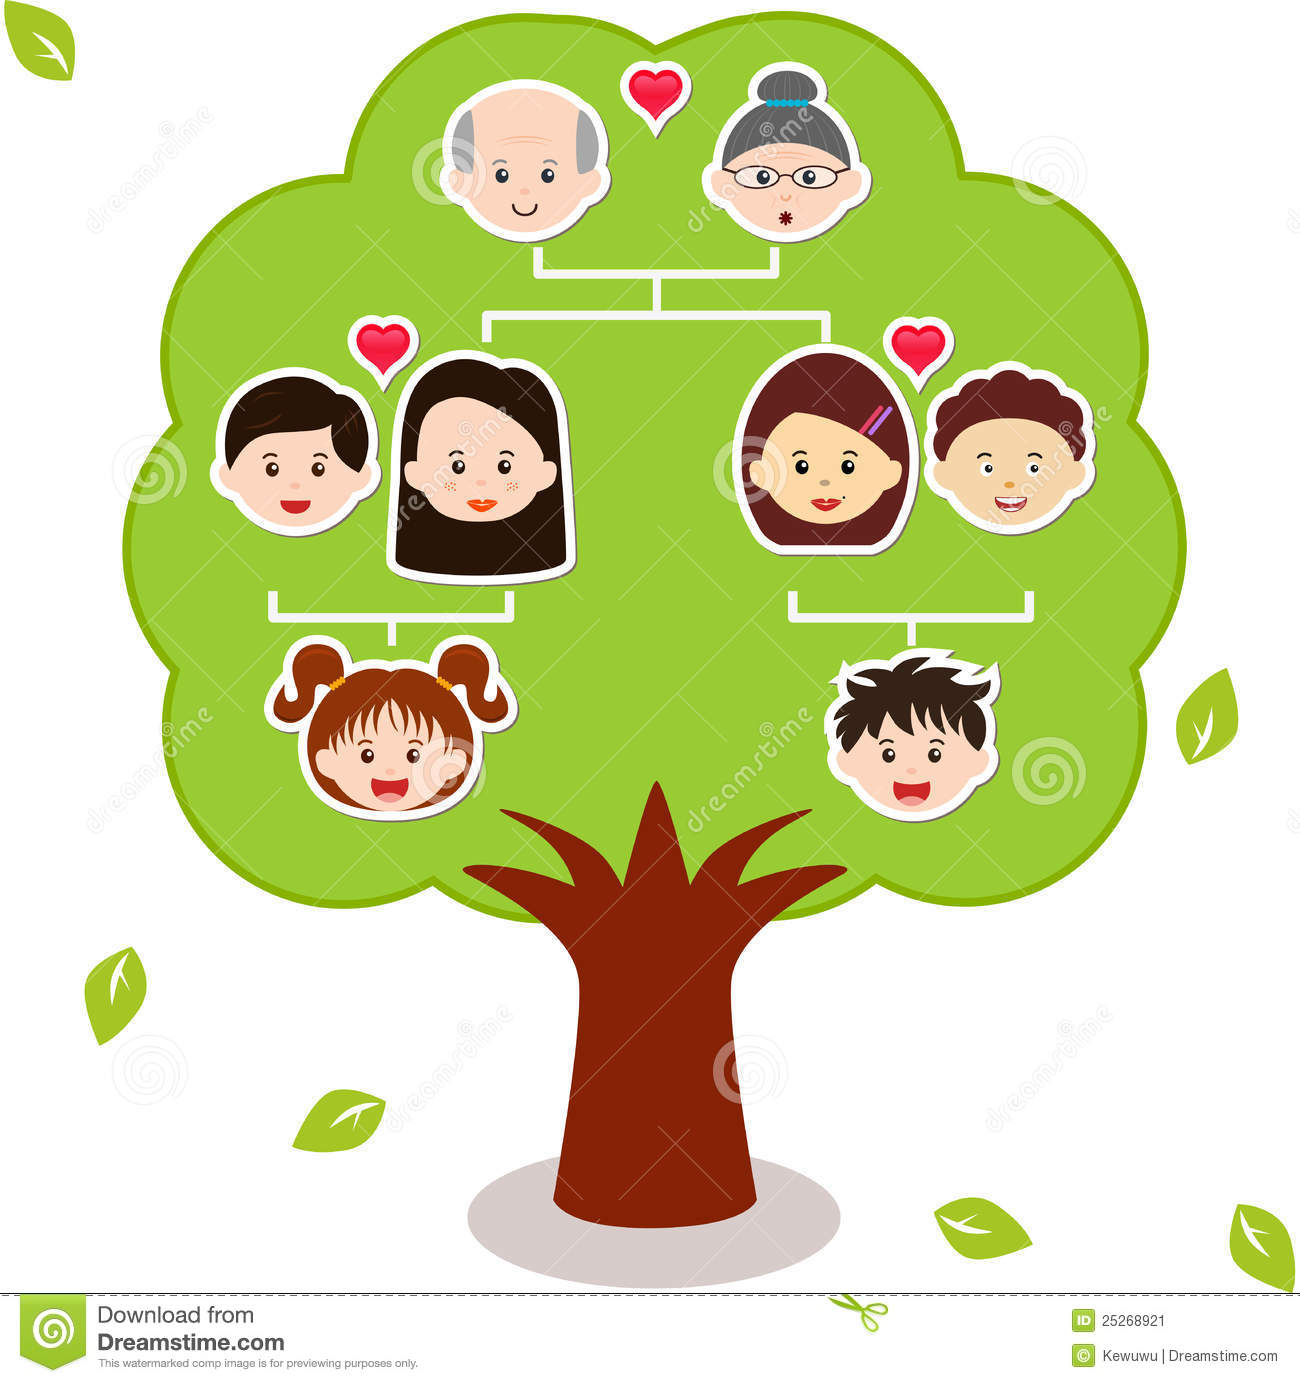 Clipart stock sample clipart panda free clipart images - Family Tree 187 Hadiyaaa